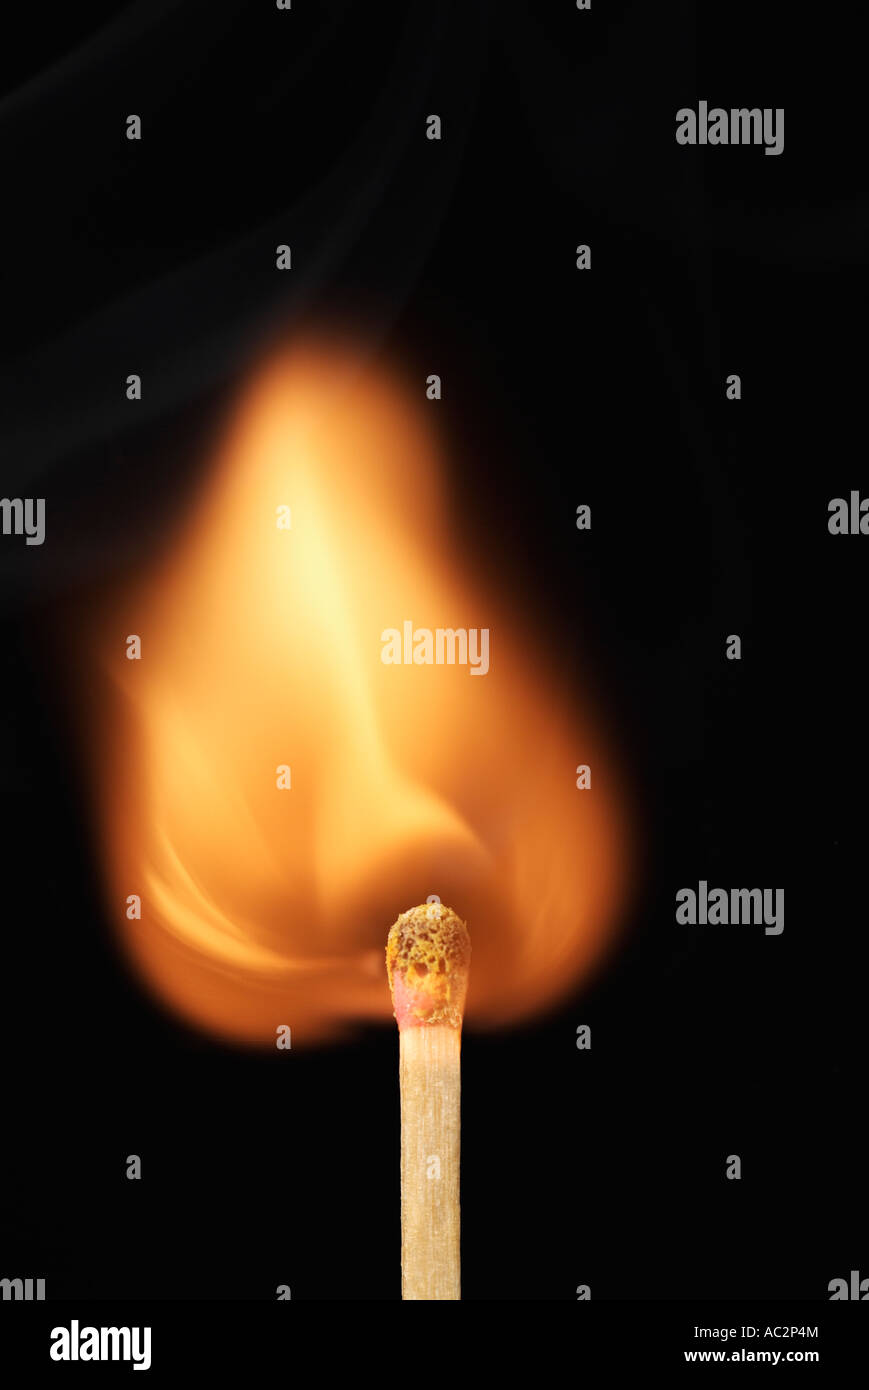 Lit Match with a Flame Flaring Up After Being Struck Stock Photo